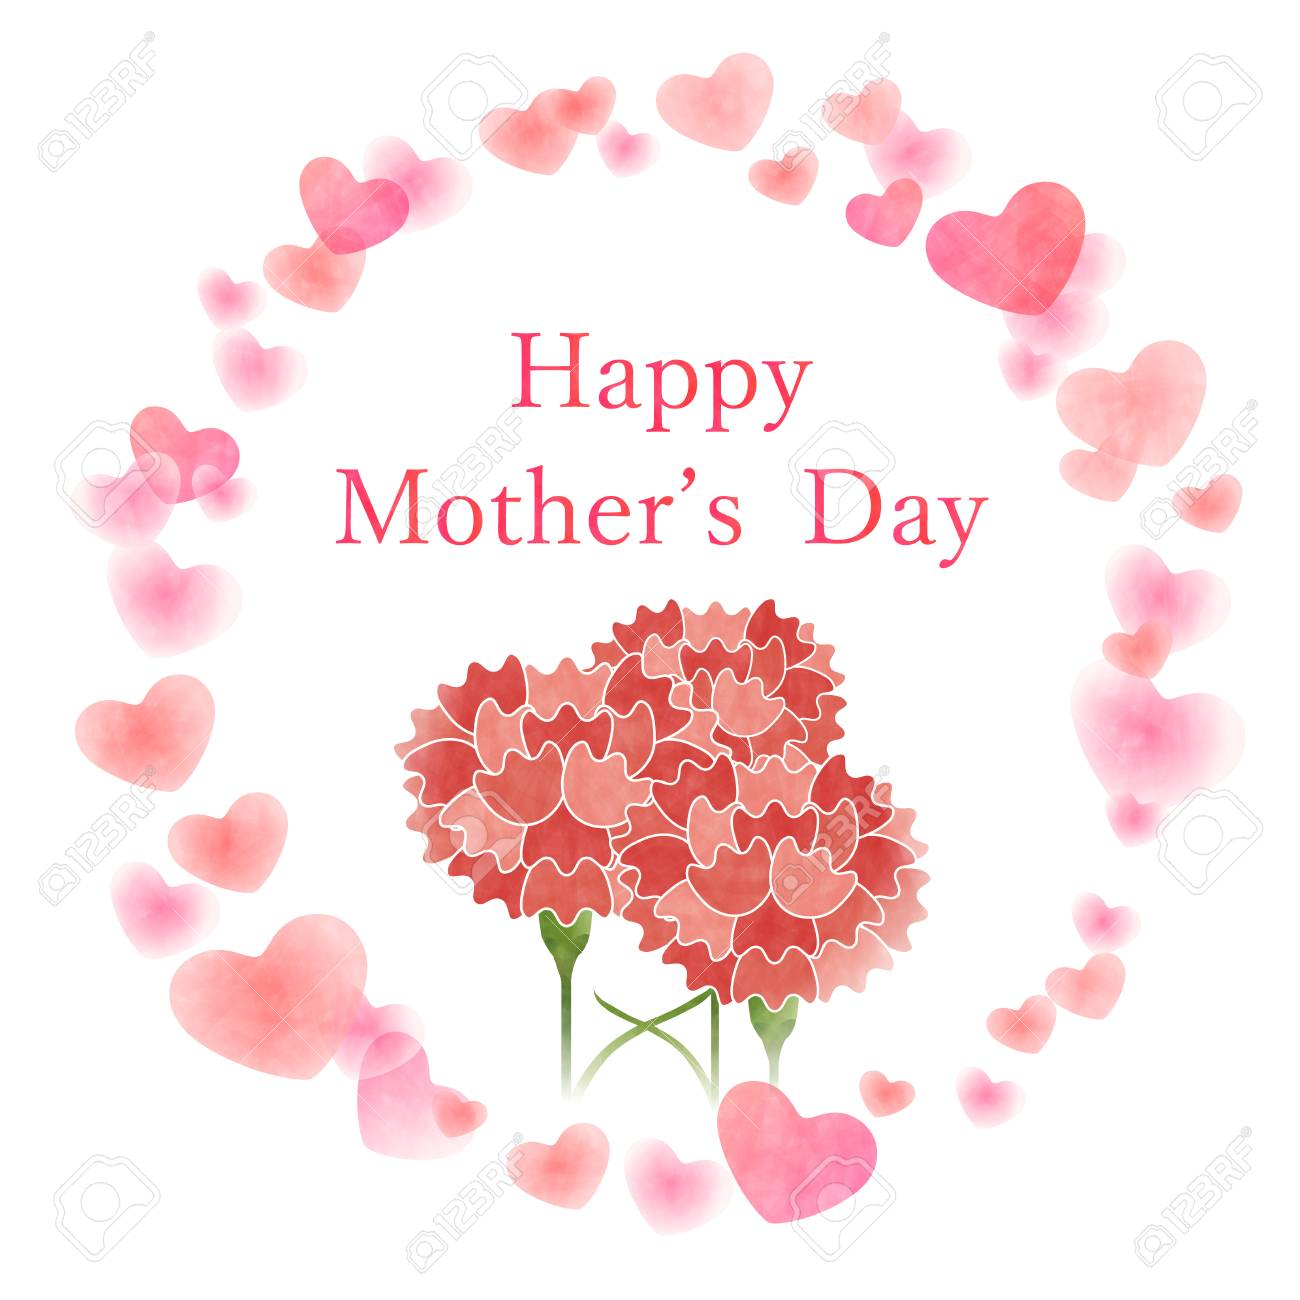 Mothers Day Greeting Card Template With Heart And Carnation